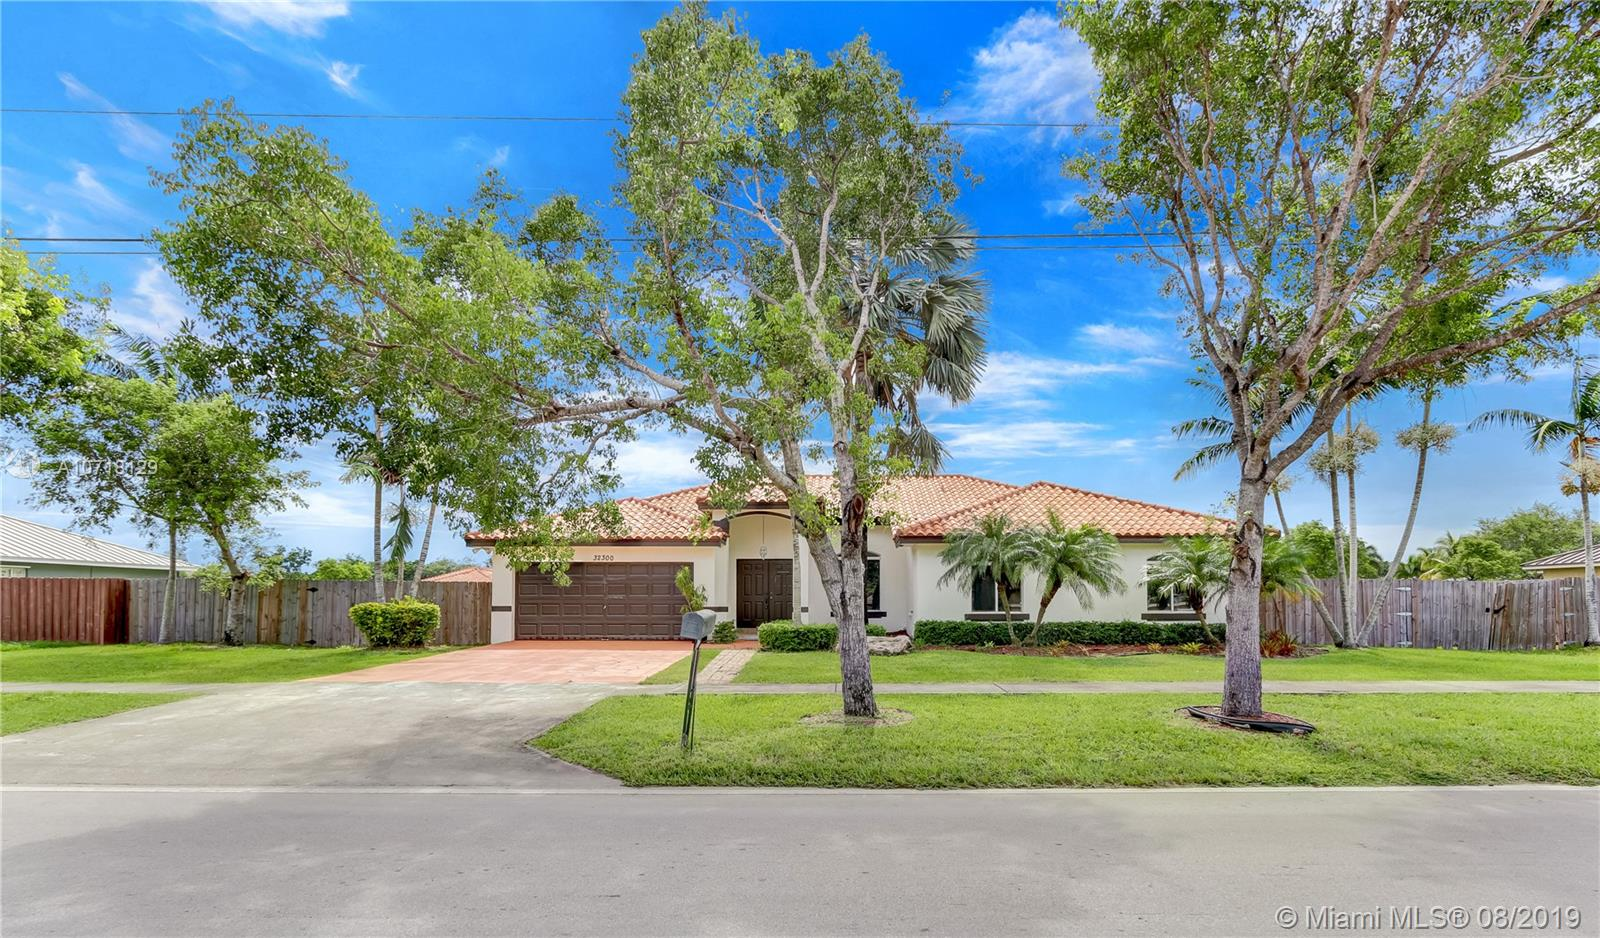 32300 SW 202nd Ave, Homestead, Florida